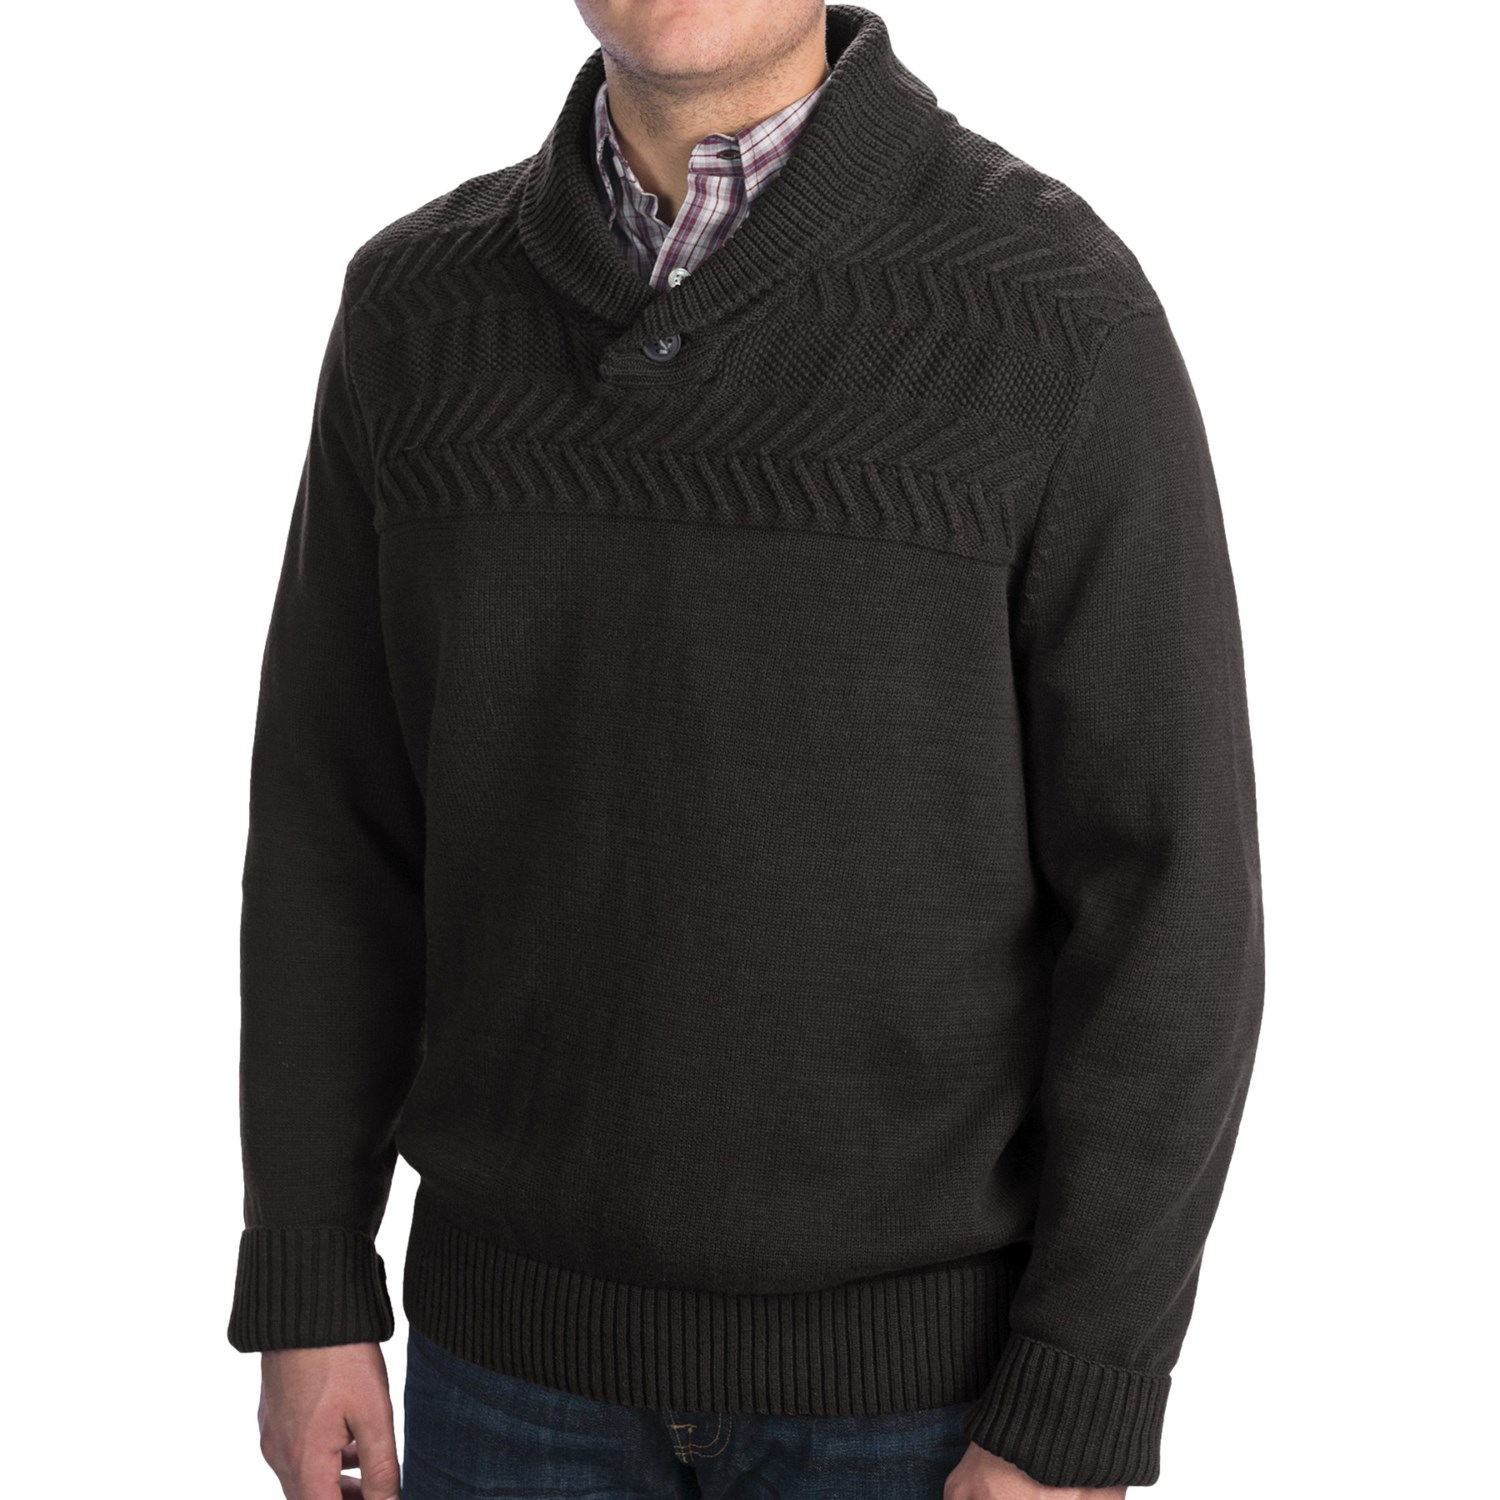 Men Men's Clothing Sweaters & Cardigans. Men's Sweaters & Cardigans. TWO GREY HILLS ZIP CARDIGAN $ THE ORIGINAL WESTERLEY $ BISON SHAWL-COLLAR CARDIGAN $ TUCSON CARDIGAN $ More Colors; SHETLAND WASHABLE WOOL CREWNECK $ OUTDOOR CREW SWEATER $